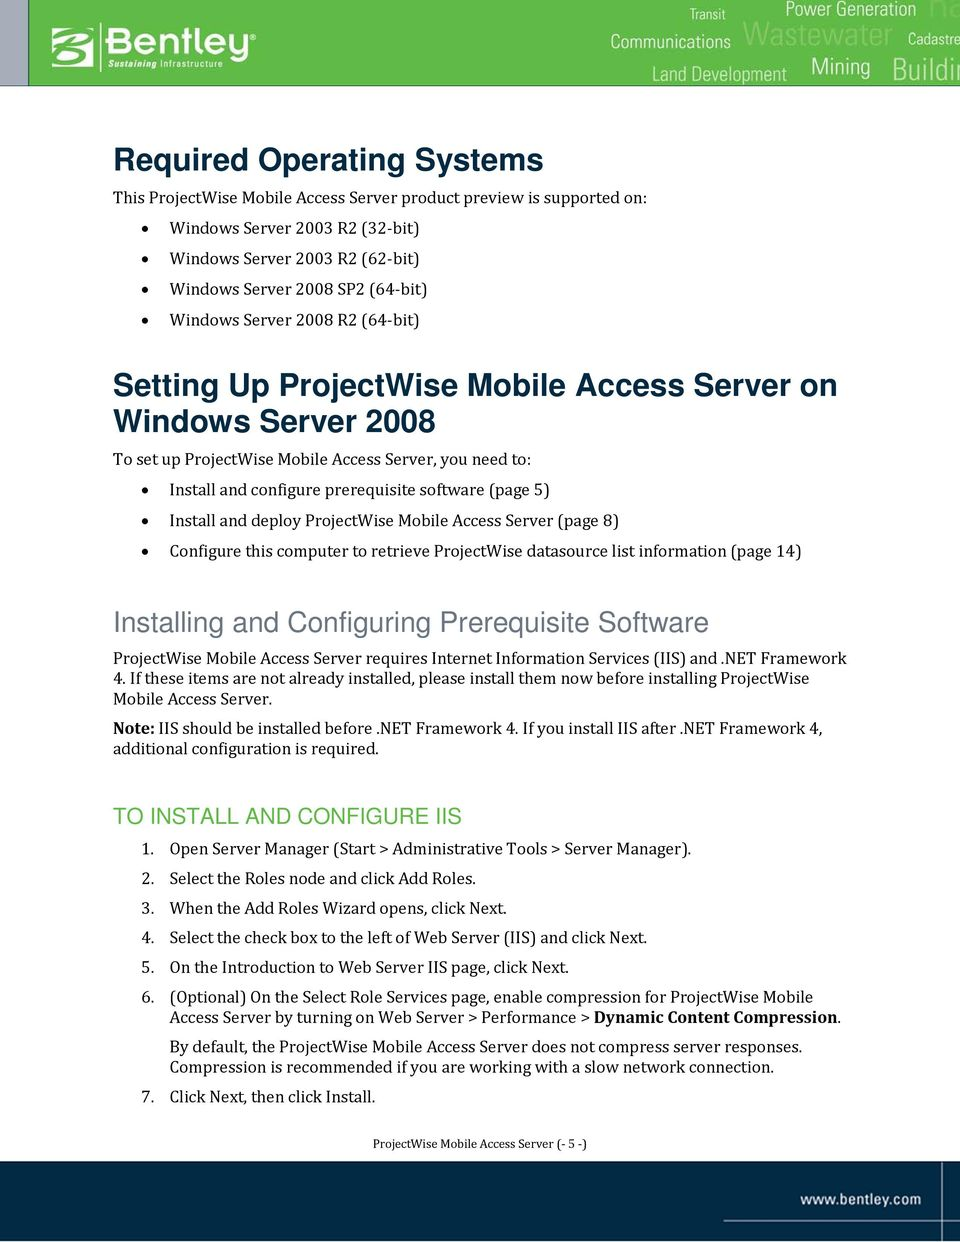 (page 5) Install and deploy ProjectWise Mobile Access Server (page 8) Configure this computer to retrieve ProjectWise datasource list information (page 14) Installing and Configuring Prerequisite